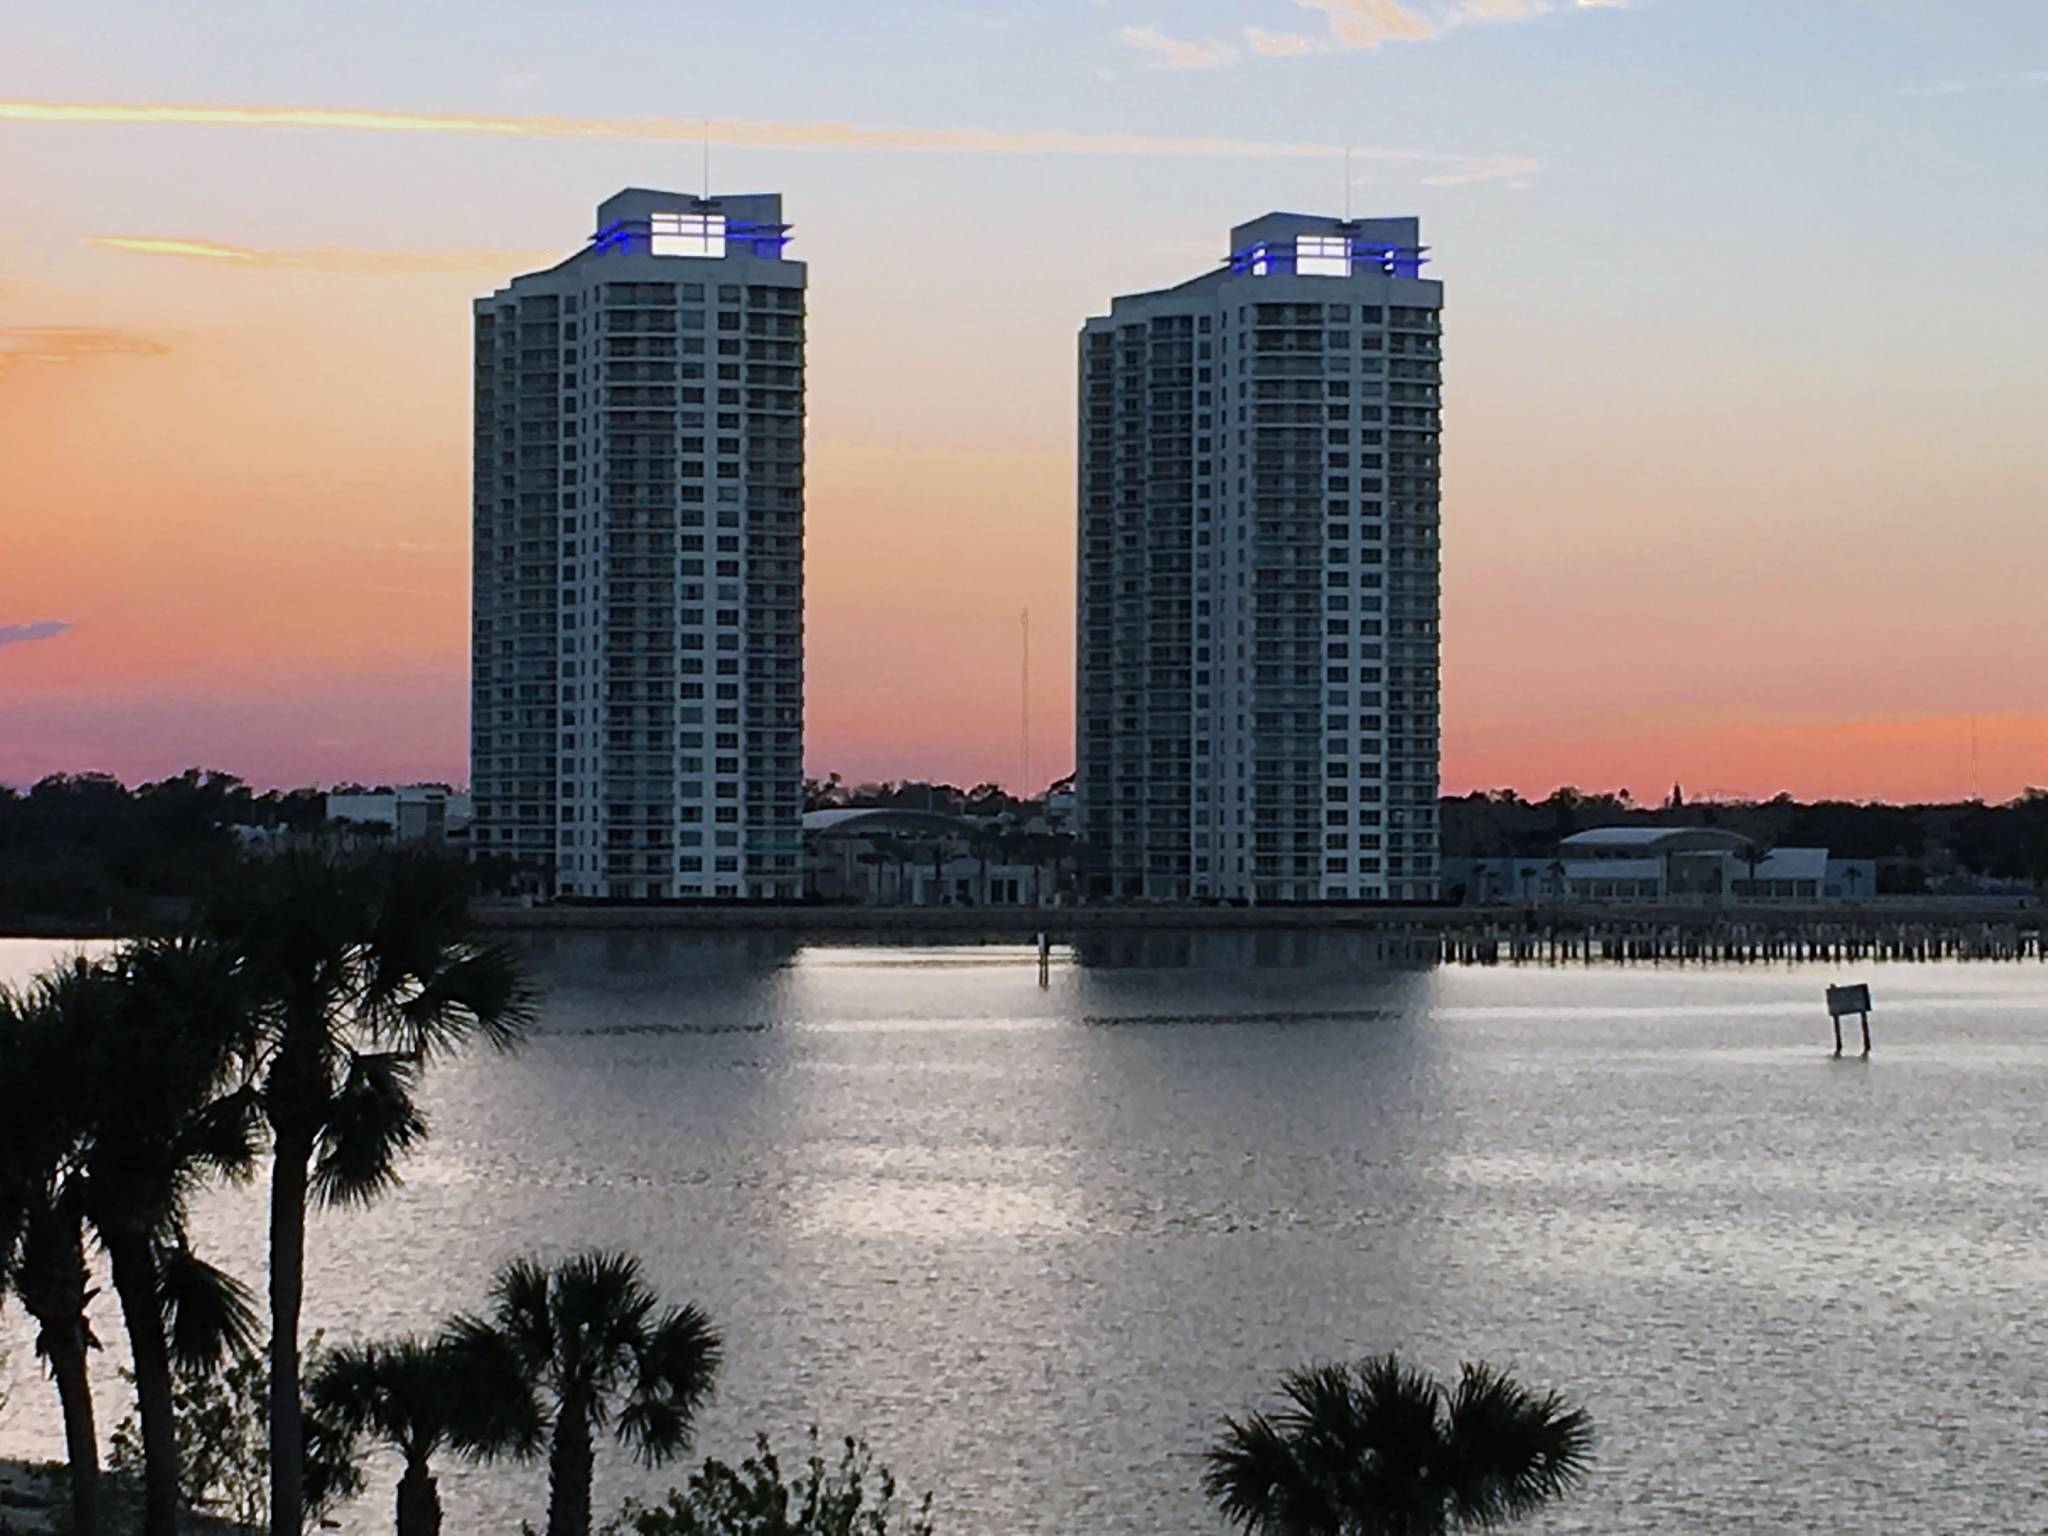 finest group maarten rent from cottage daytona gently are shores estate as south october all for condominiums of beach oceanfront ocean cottages st waves rentals the over atlantic shoreline stmaartencondominium real one wash units condos